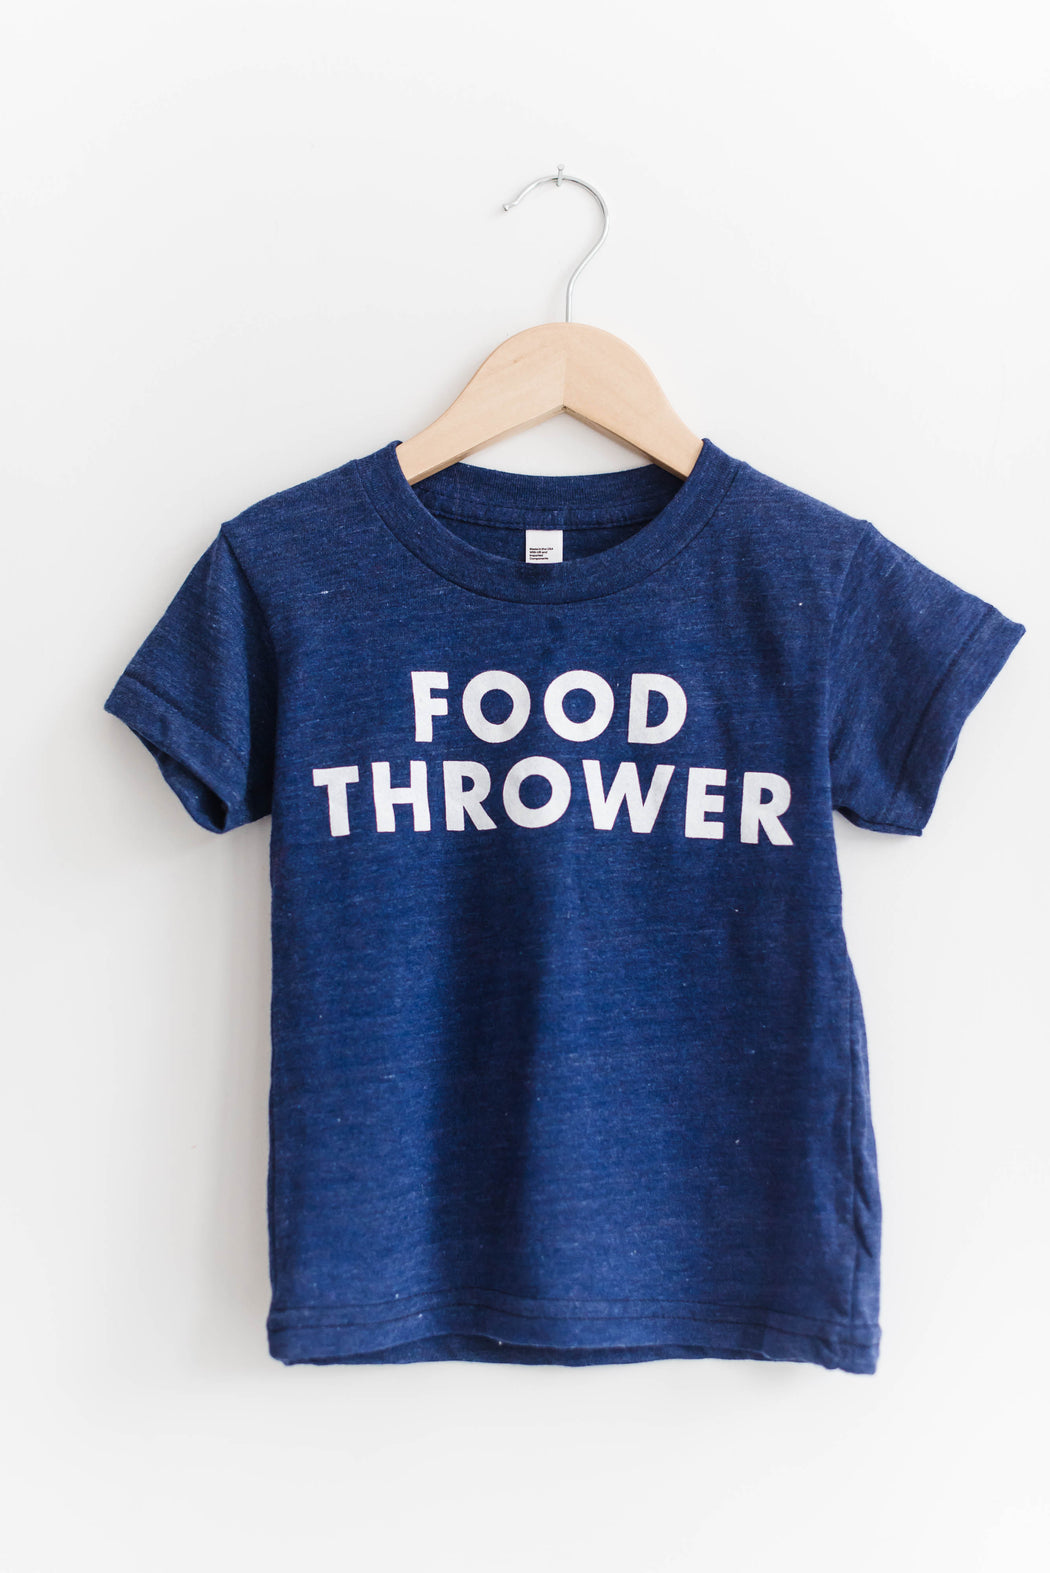 Food Thrower (Indigo)